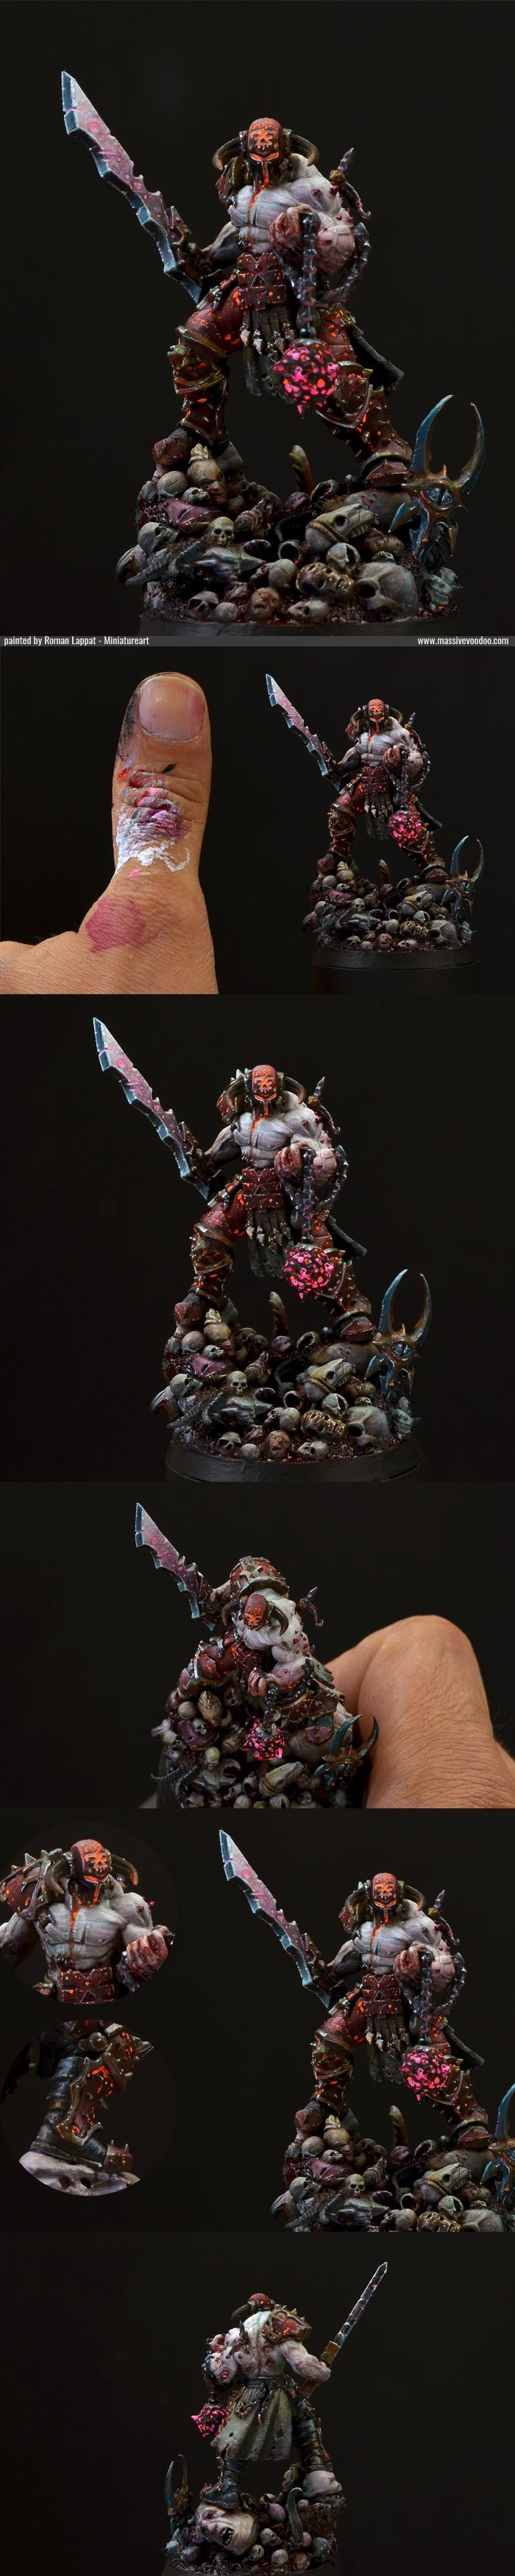 CoolMiniOrNot - Slaugtherpriest of Khorne by jarhead